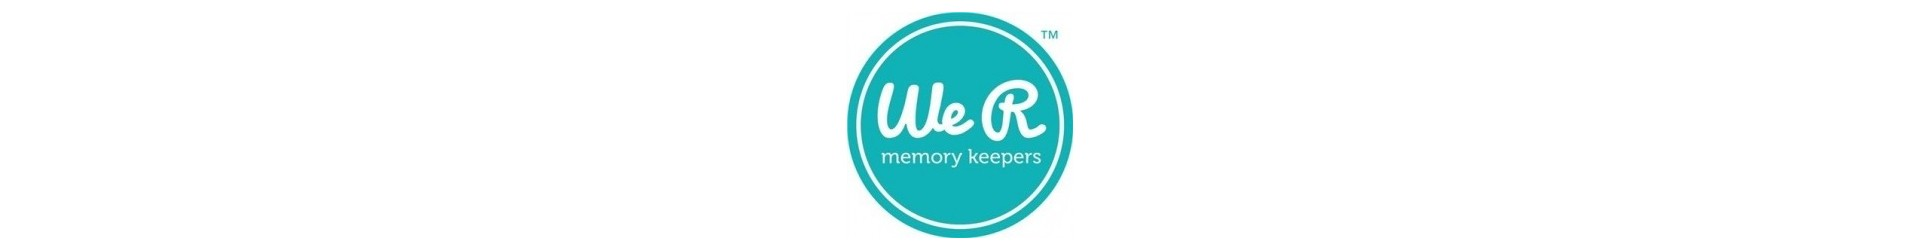 WE'R MEMORY KEEPERS